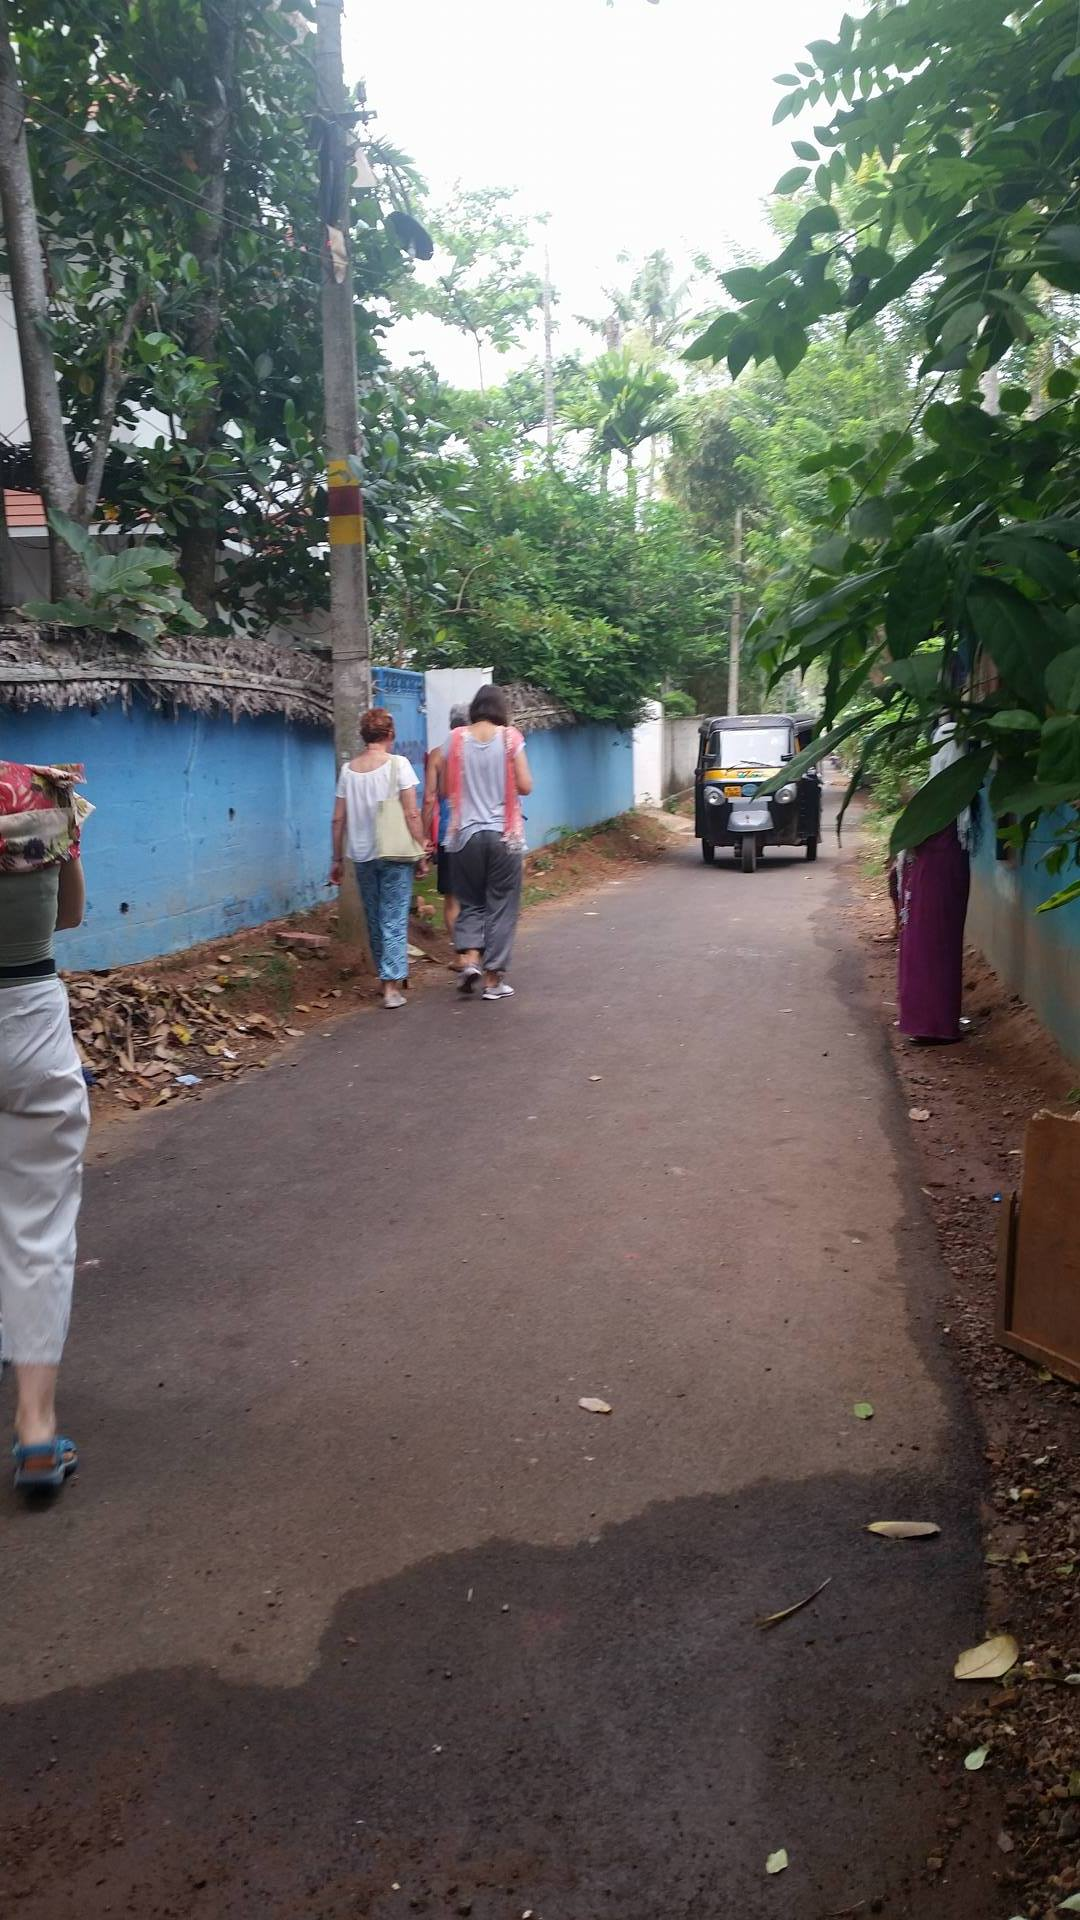 village street upgraded from potholed dirt